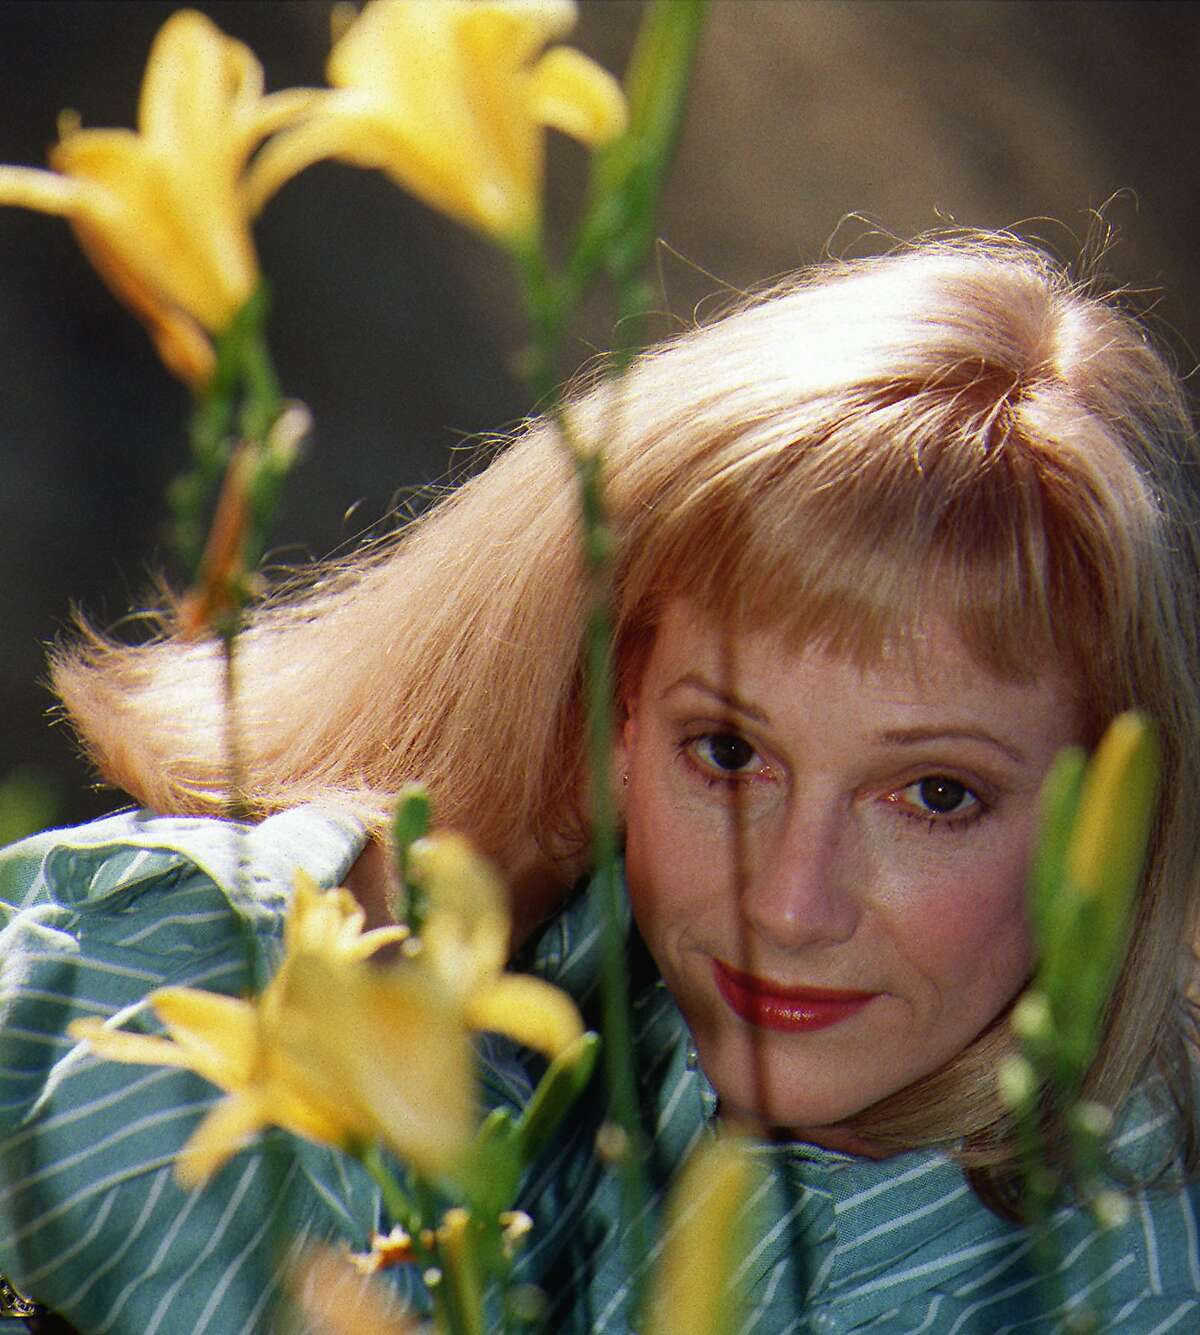 """FILE - In this Nov. 1, 1997 file photo, actress/director/author Sondra Locke poses for a photograph at a garden in Beverly Hills, Calif. A death certificate obtained by The Associated Press shows Oscar-nominated actress Locke died Nov. 3, 2018, at age 74 at her home in Los Angeles of cardiac arrest stemming from breast and bone cancer. She was nominated for an Academy Award for best supporting actress for 1968's """"The Heart is a Lonely Hunter,"""" her first film. (AP Photo/ Damian Dovarganes, File)"""